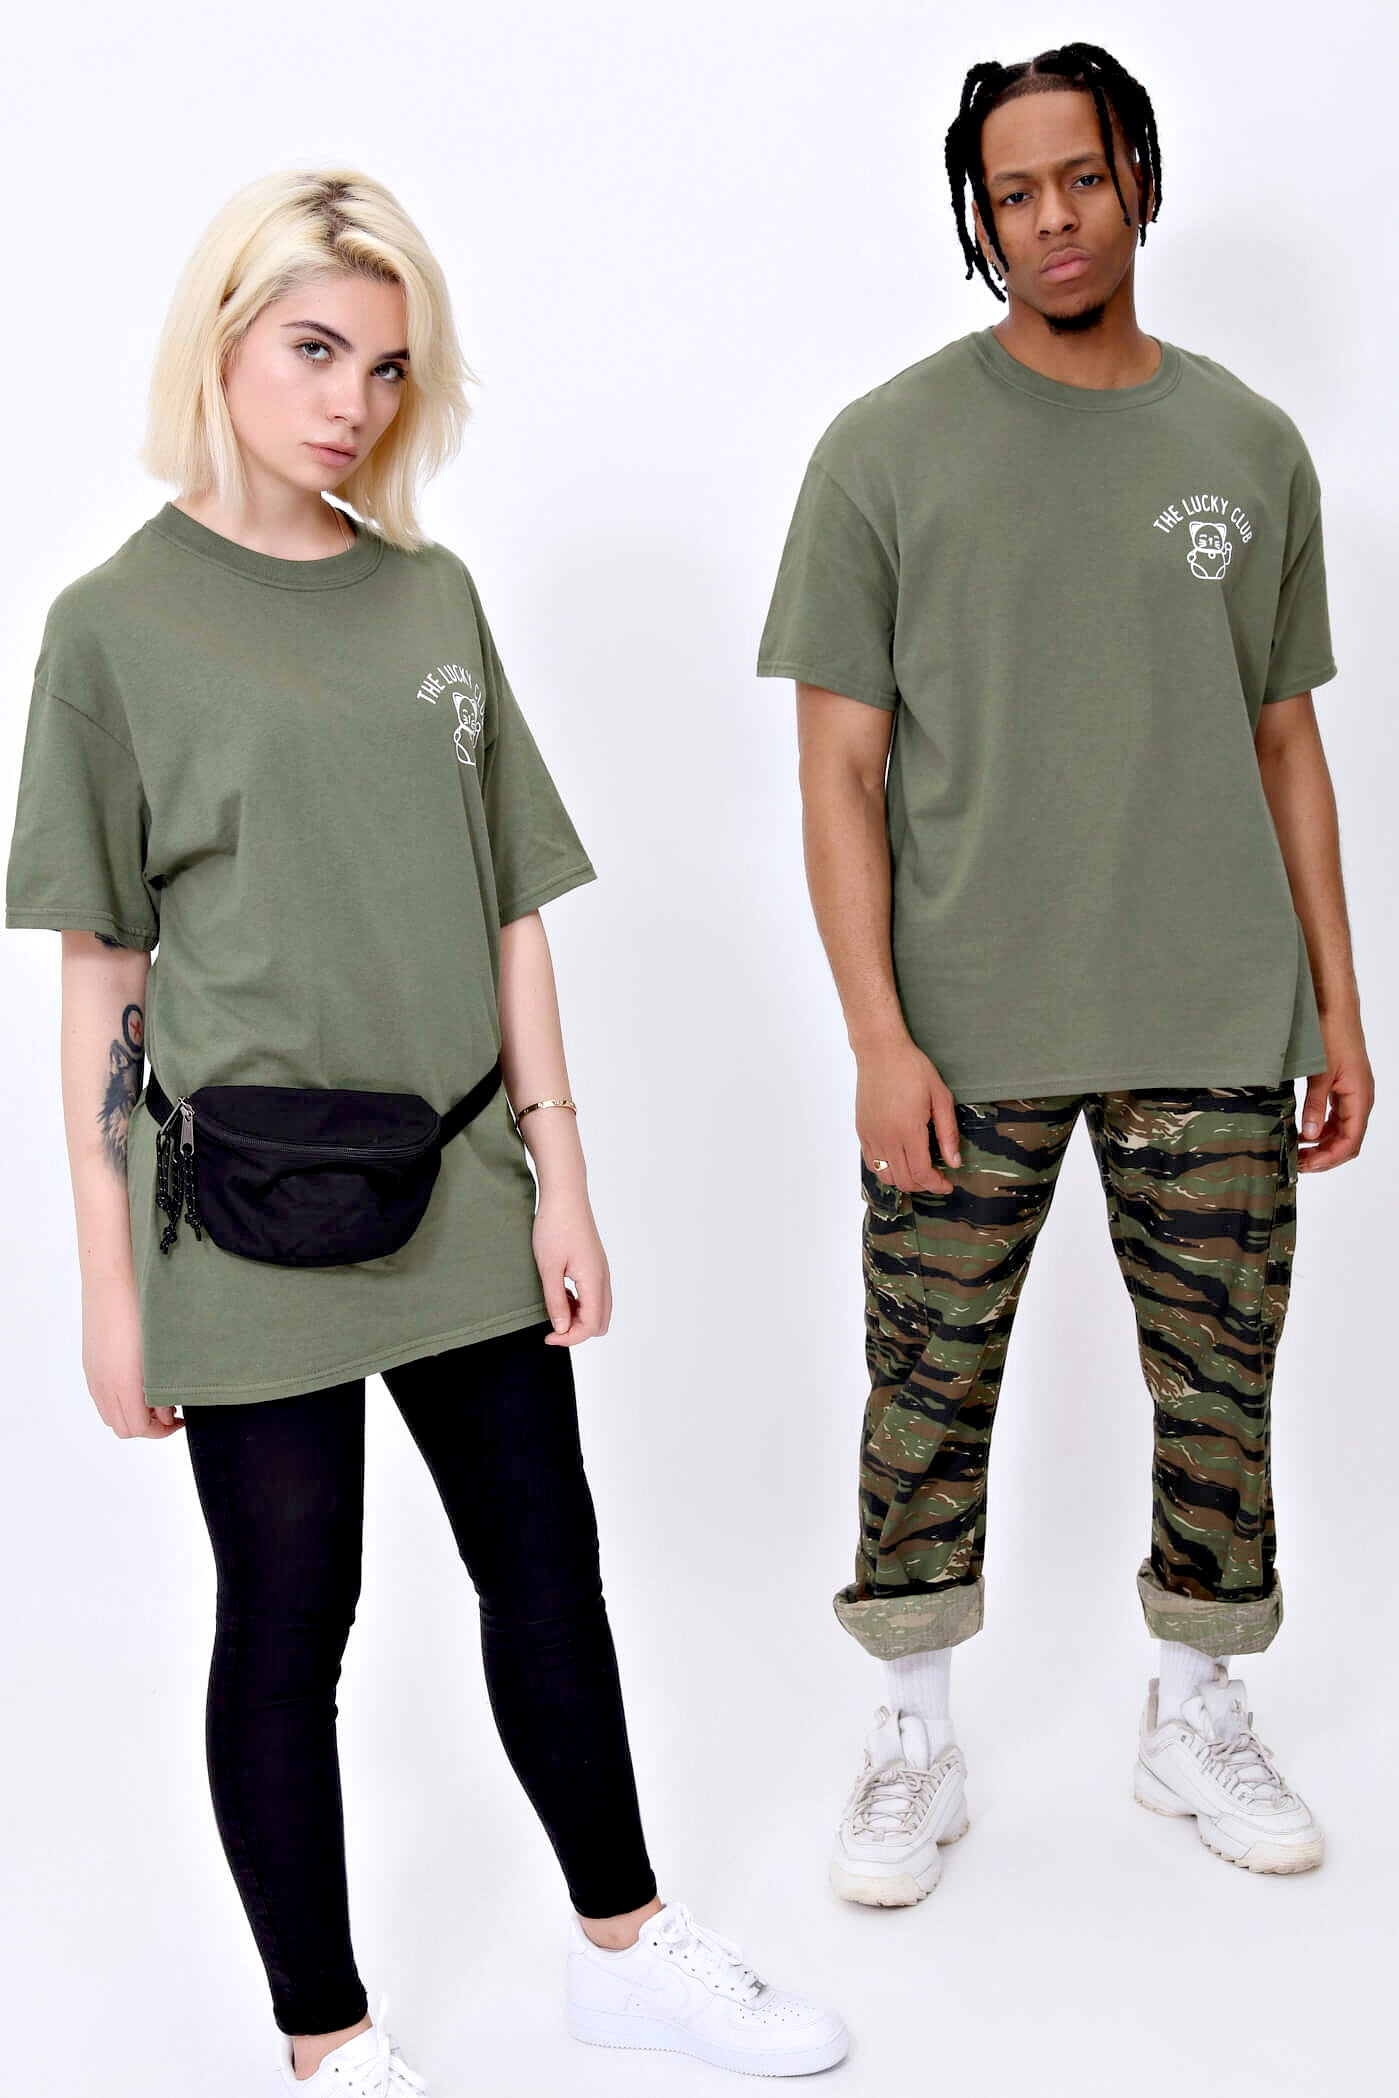 Lucky Cat T shirt in Khaki